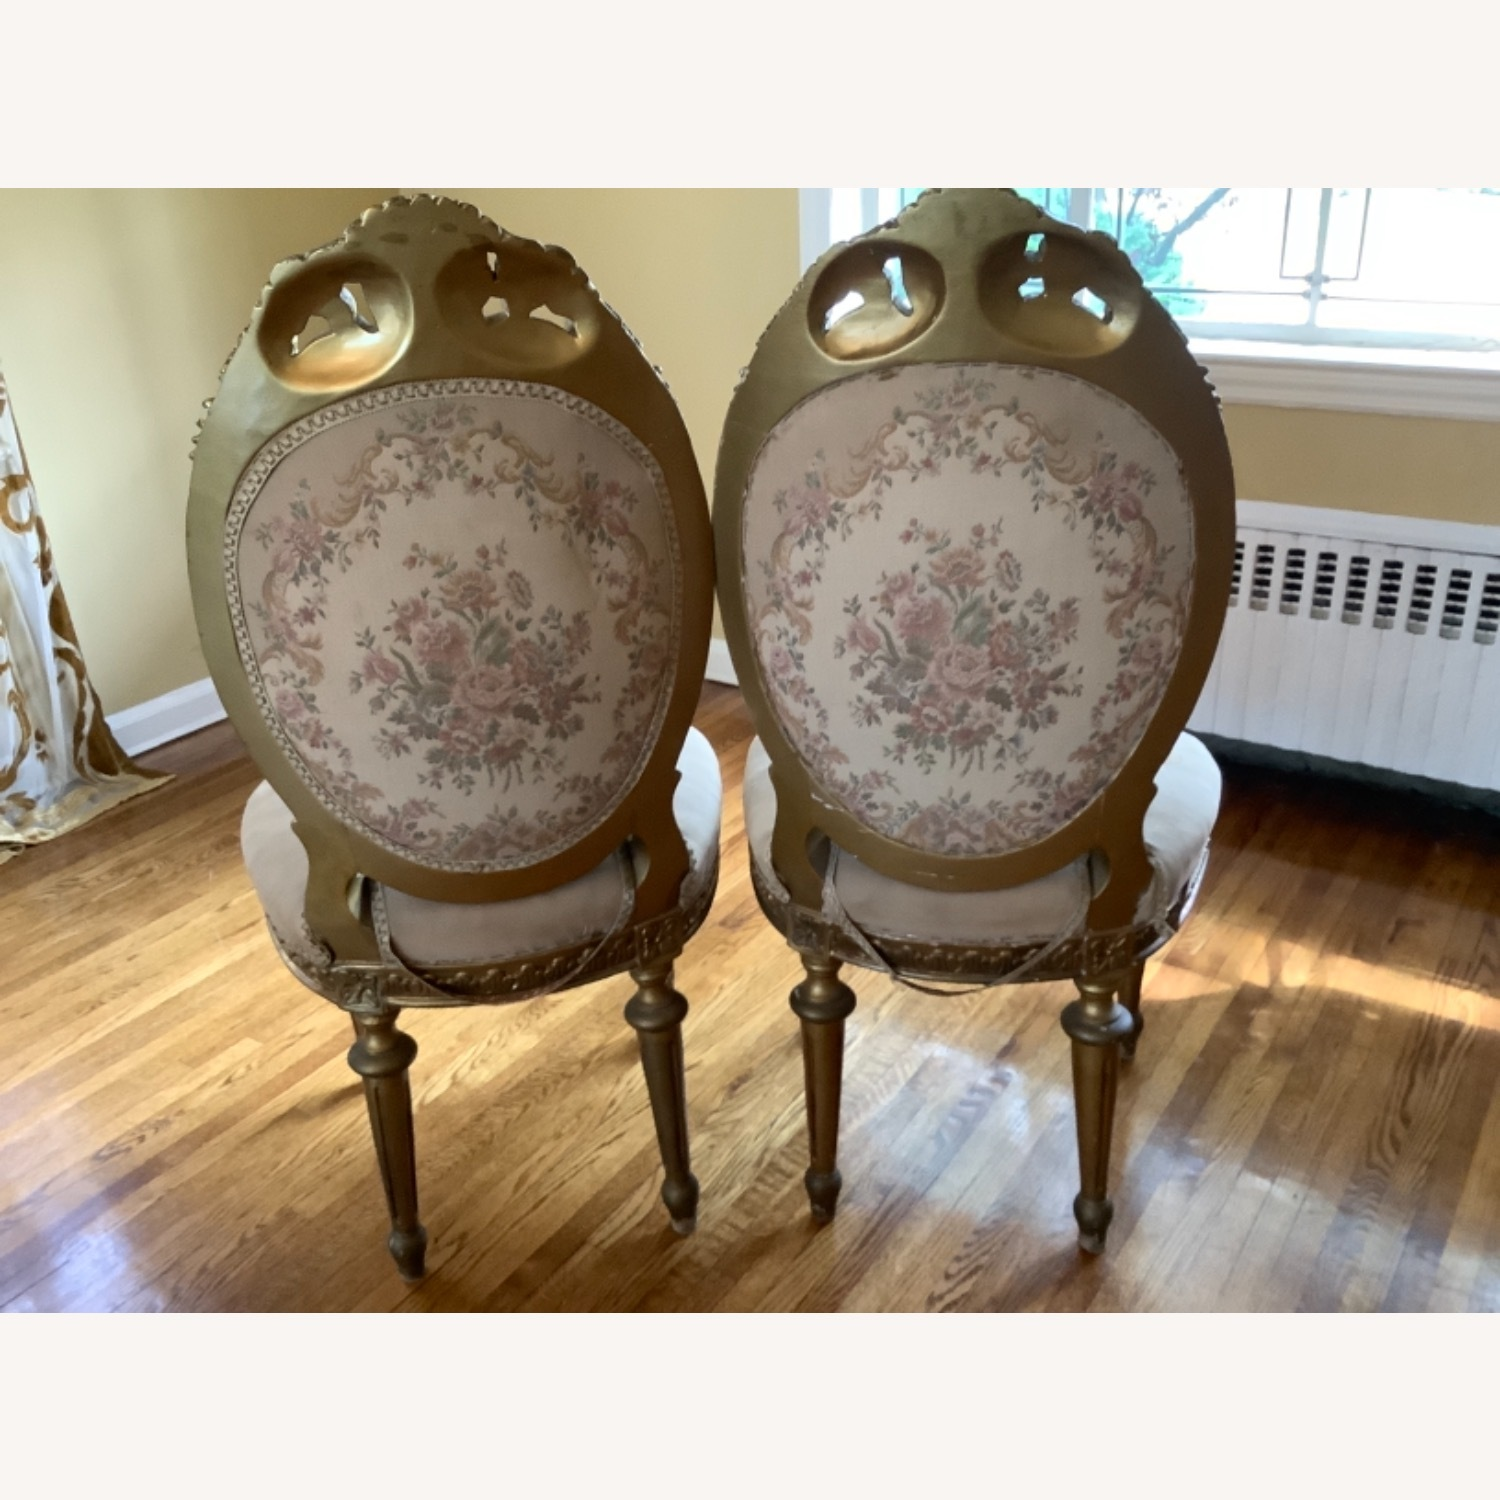 Antique Side Chairs - image-2